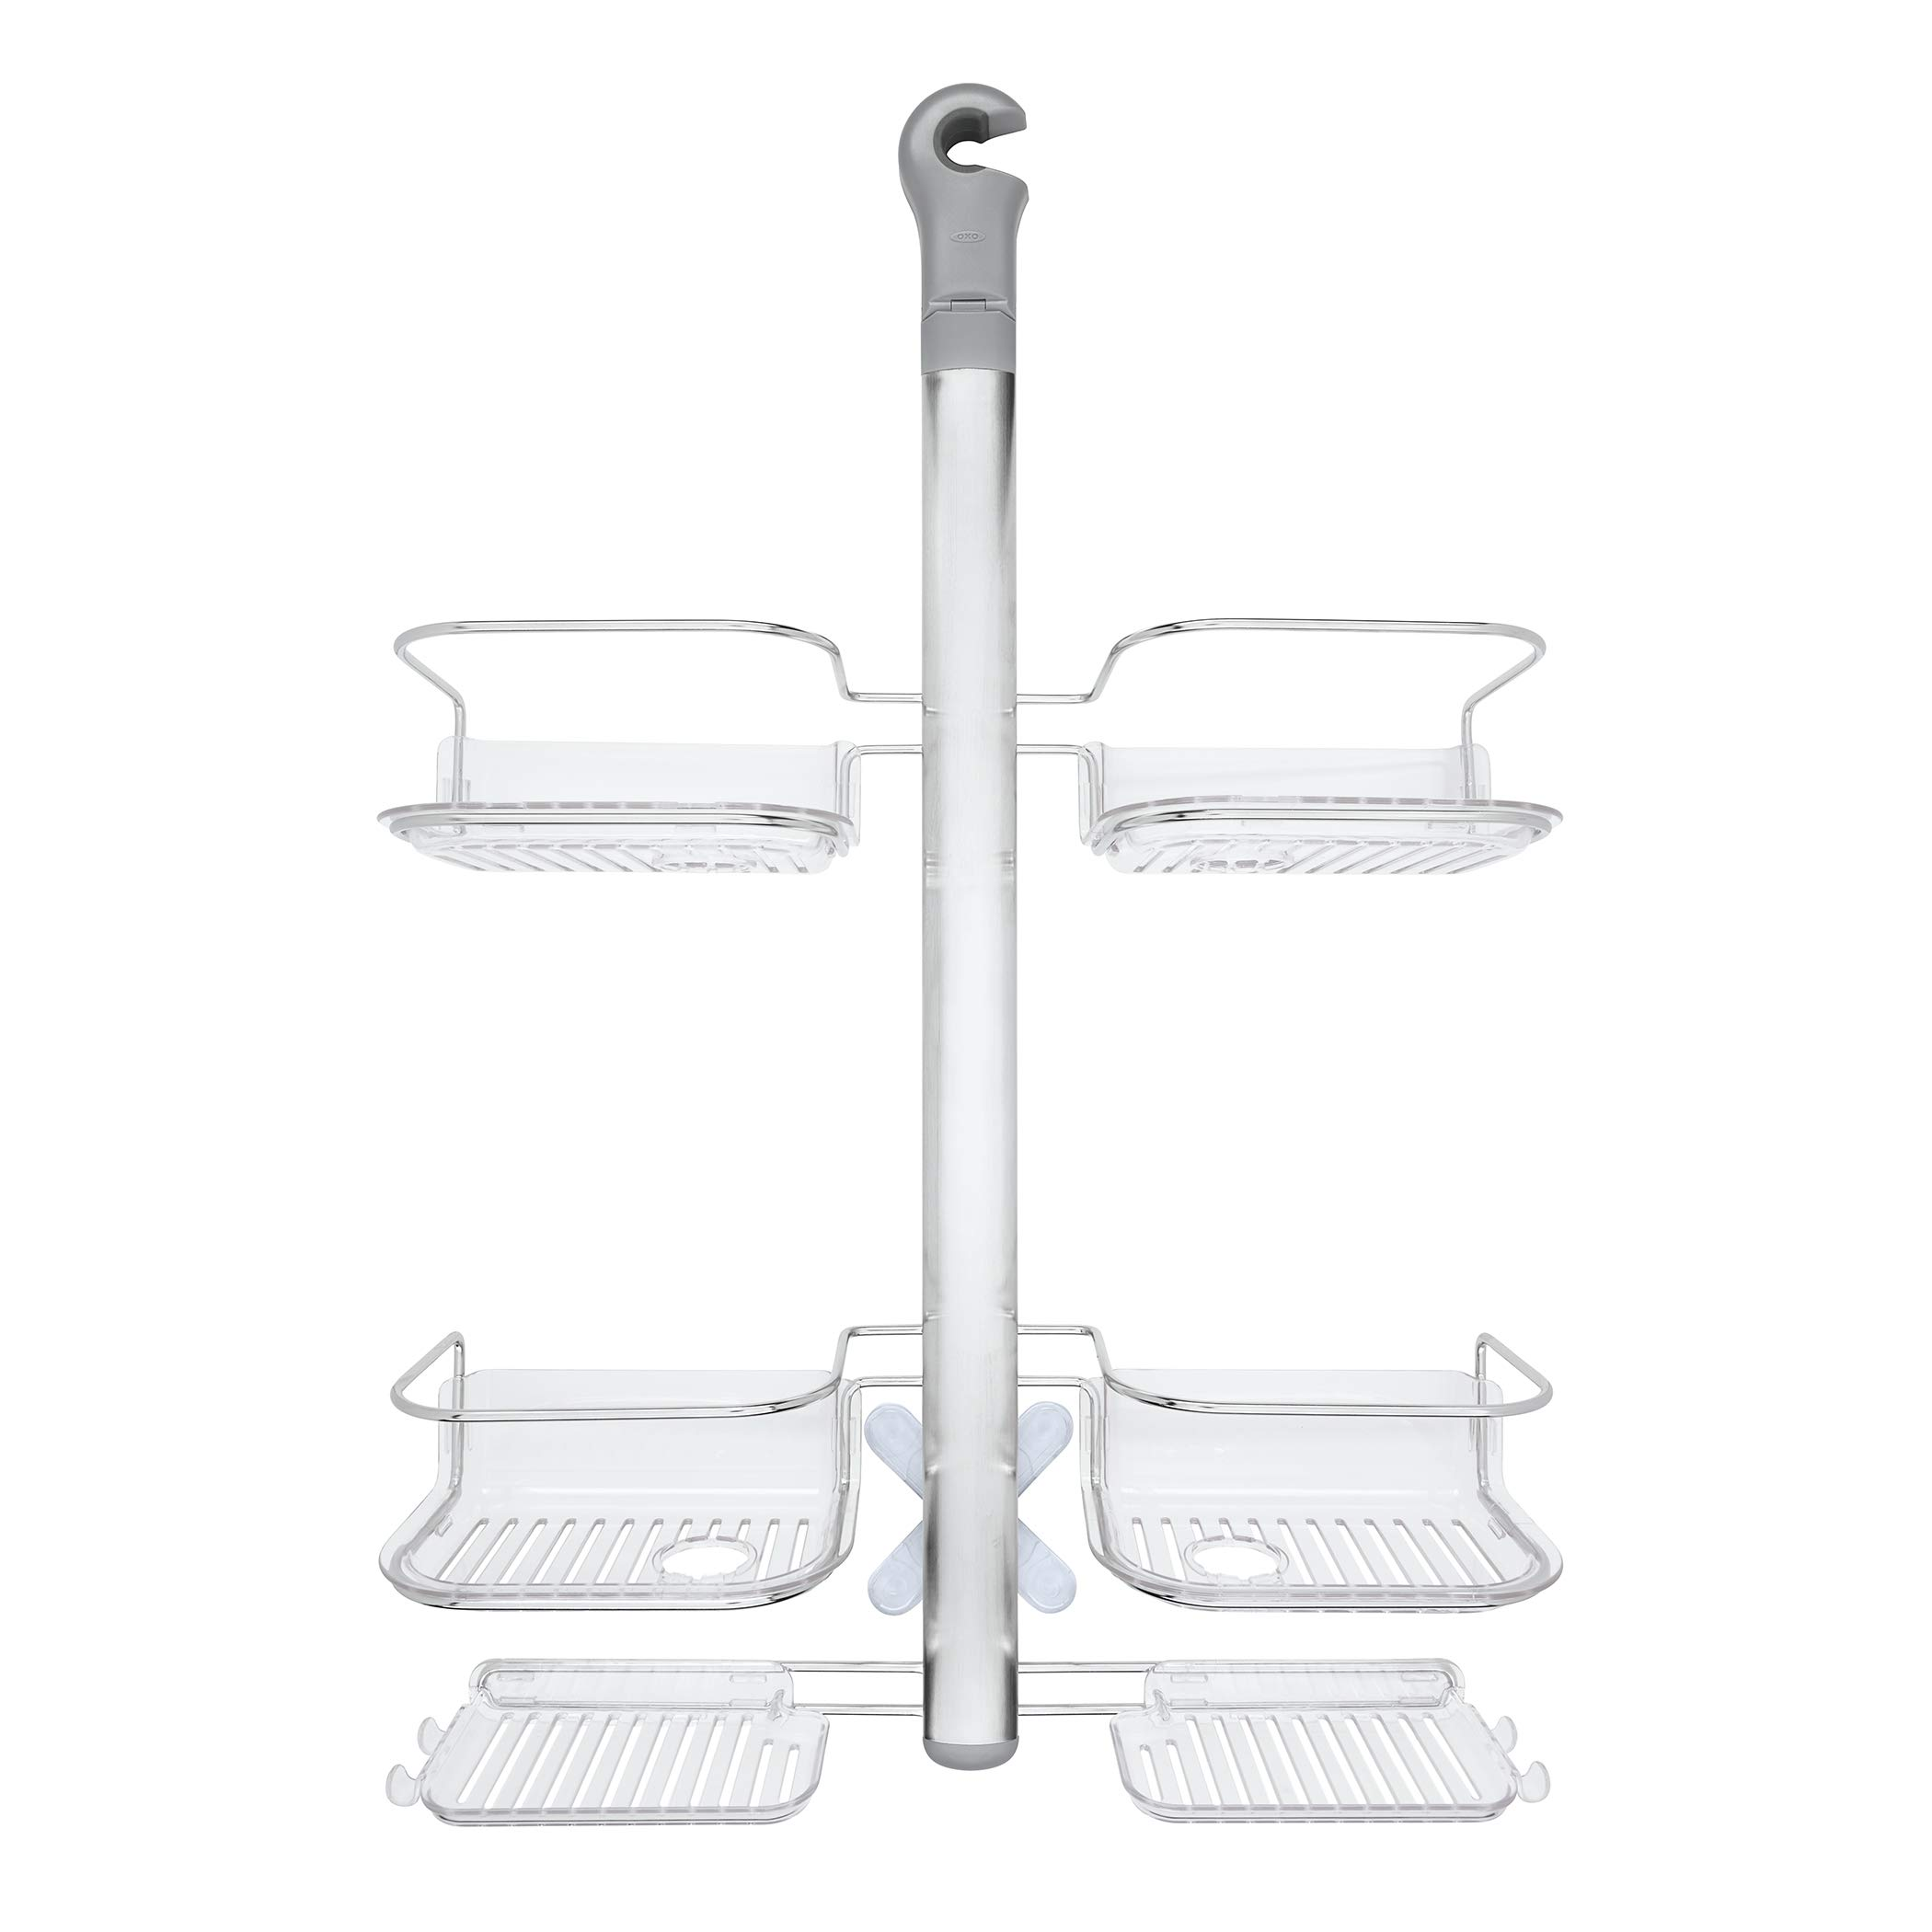 OXO Good Grips Stainless Steel Shower Caddy with Hose Keeper for Handheld Shower Heads by OXO